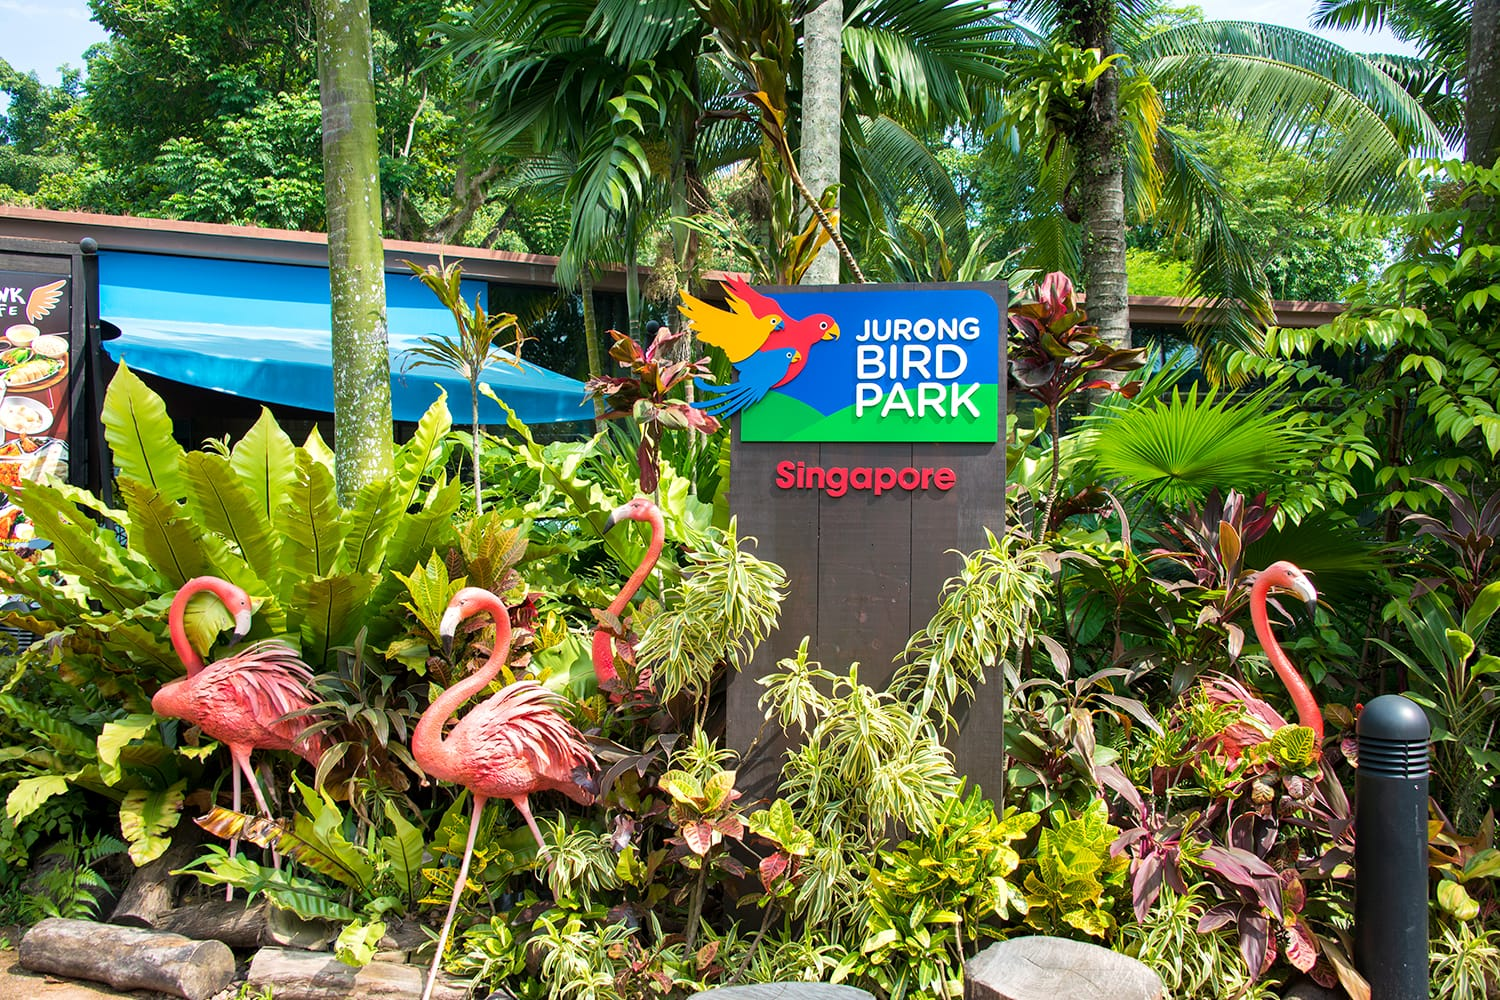 Entrance to Jurong Bird Park in Singapore